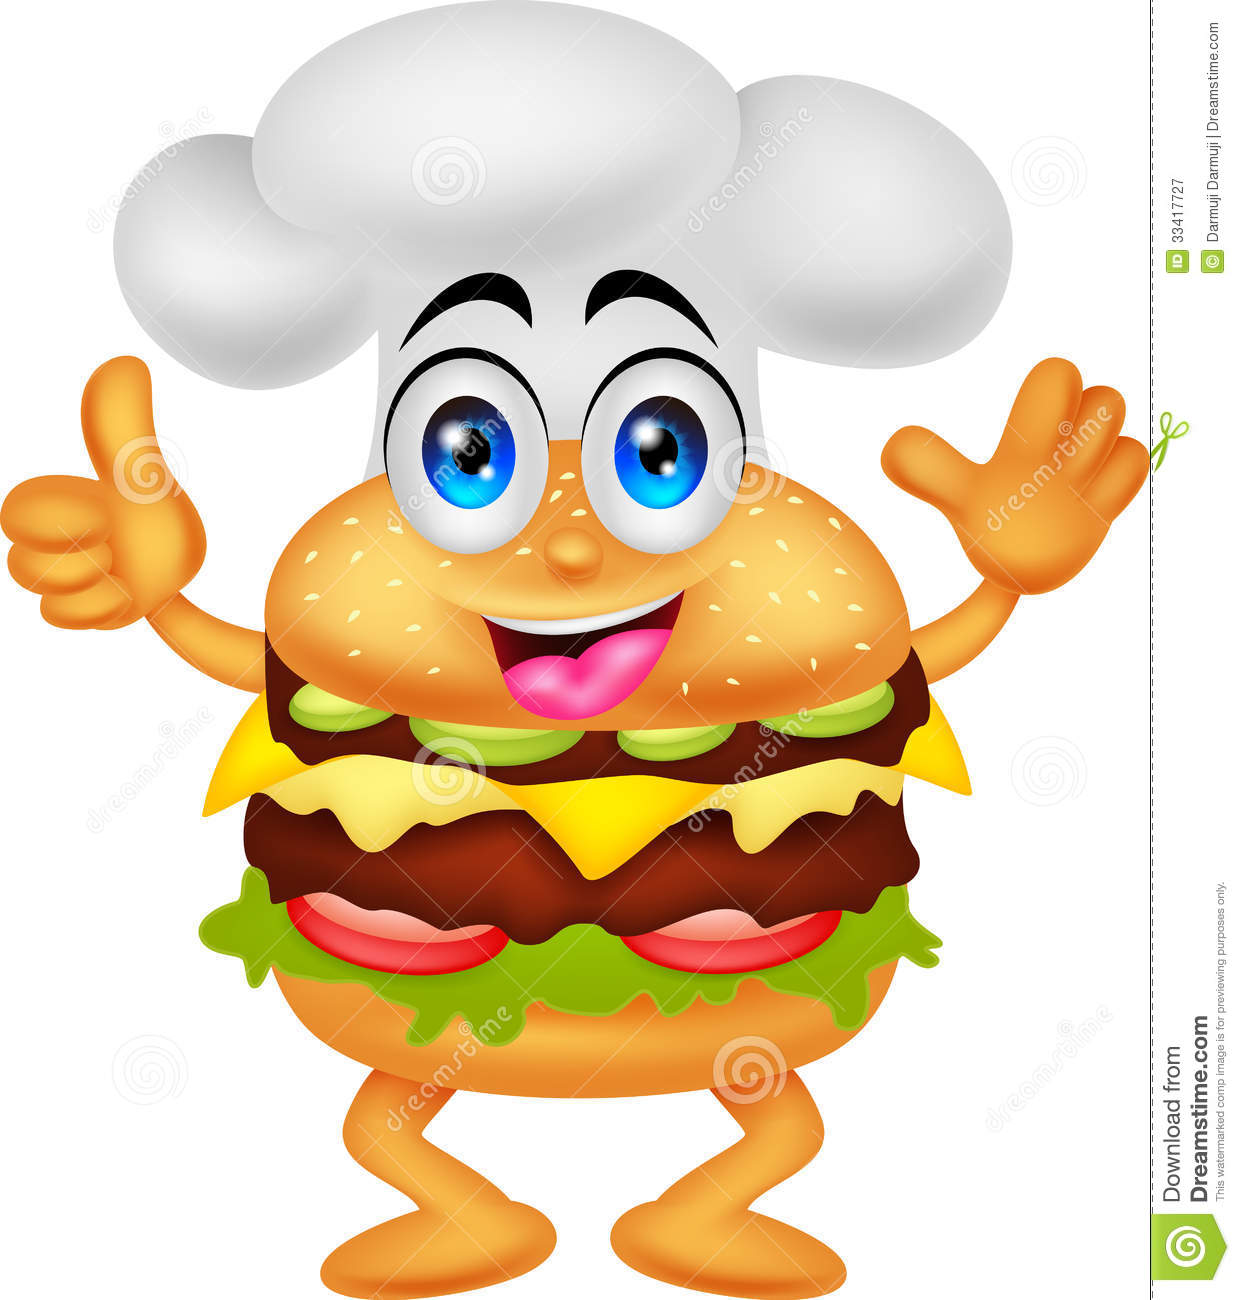 Royalty Free Stock Photography Funny Cartoon Burger Chef Character Illustration Image33417727 besides Steven Universe Vs Steven Diamond 600611312 in addition Advice For Black Women Fitness Relationships Talk With Mark Jenkins moreover Vegetable Clip Art also The Reinvention Of Gucci Mane. on onion cartoons wallpaper